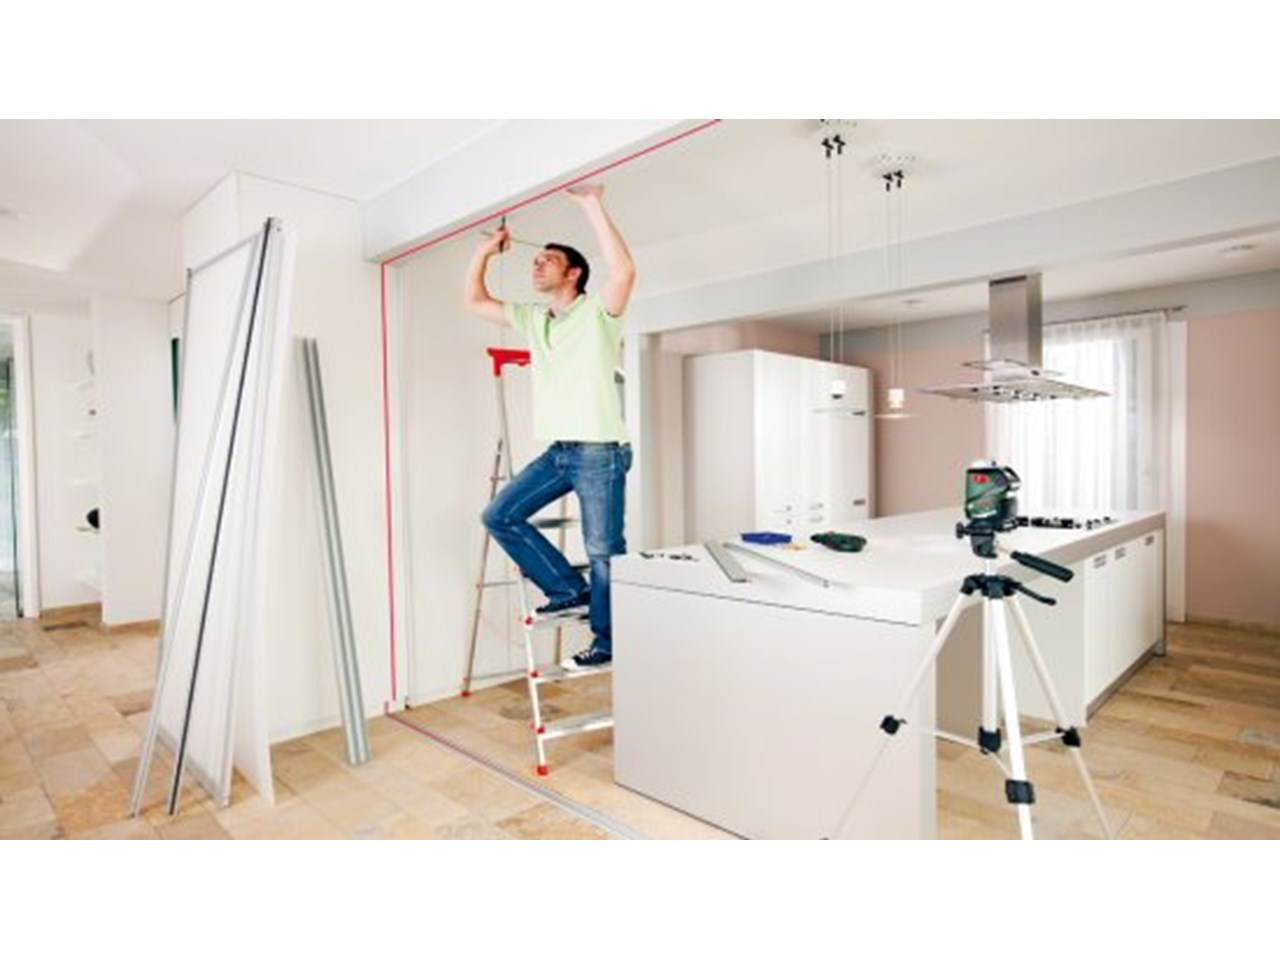 bosch pll 360. multi line laser self levelling bosch home and garden